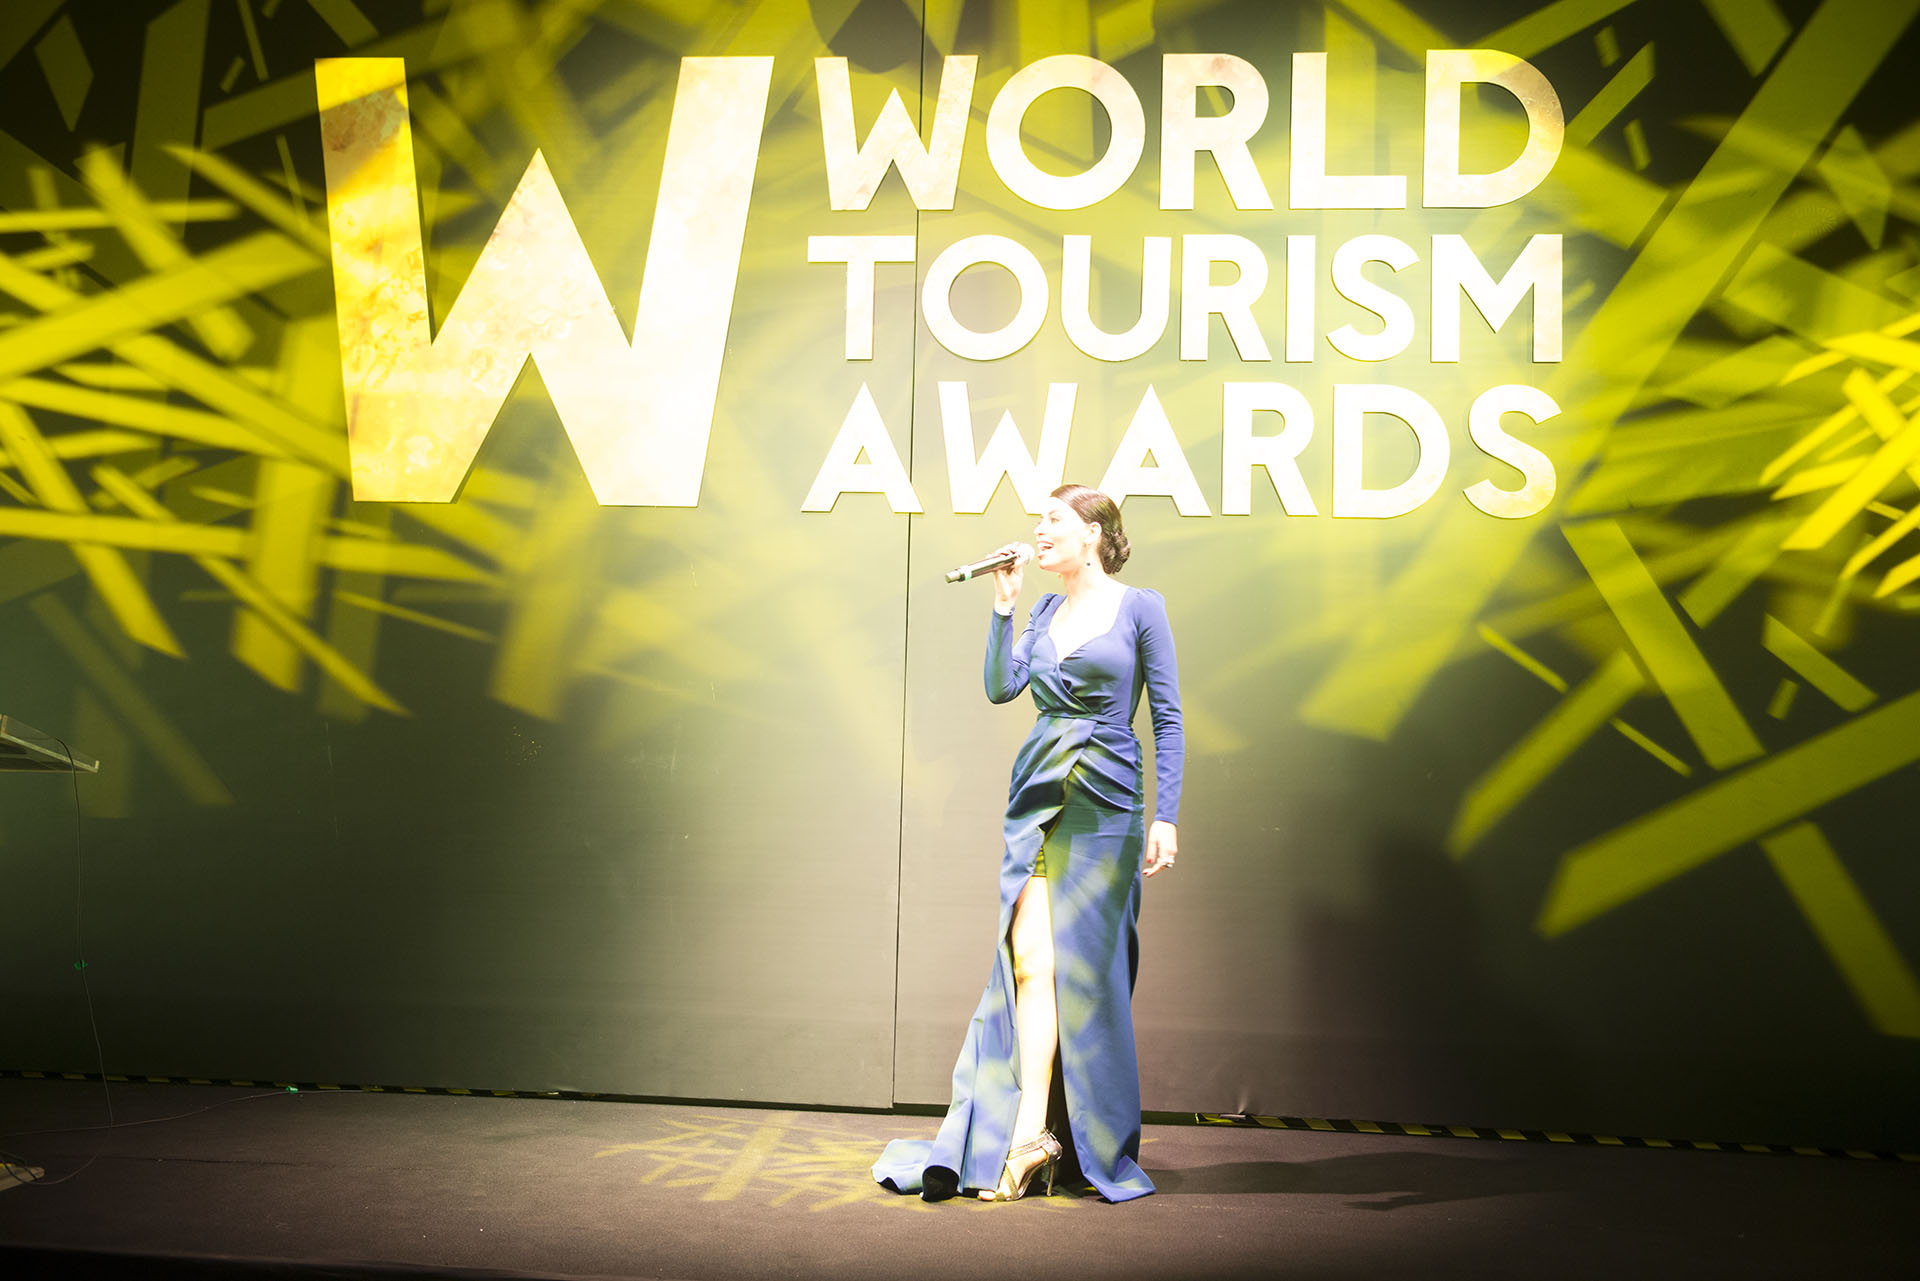 How to Apply World Tourism Awards?